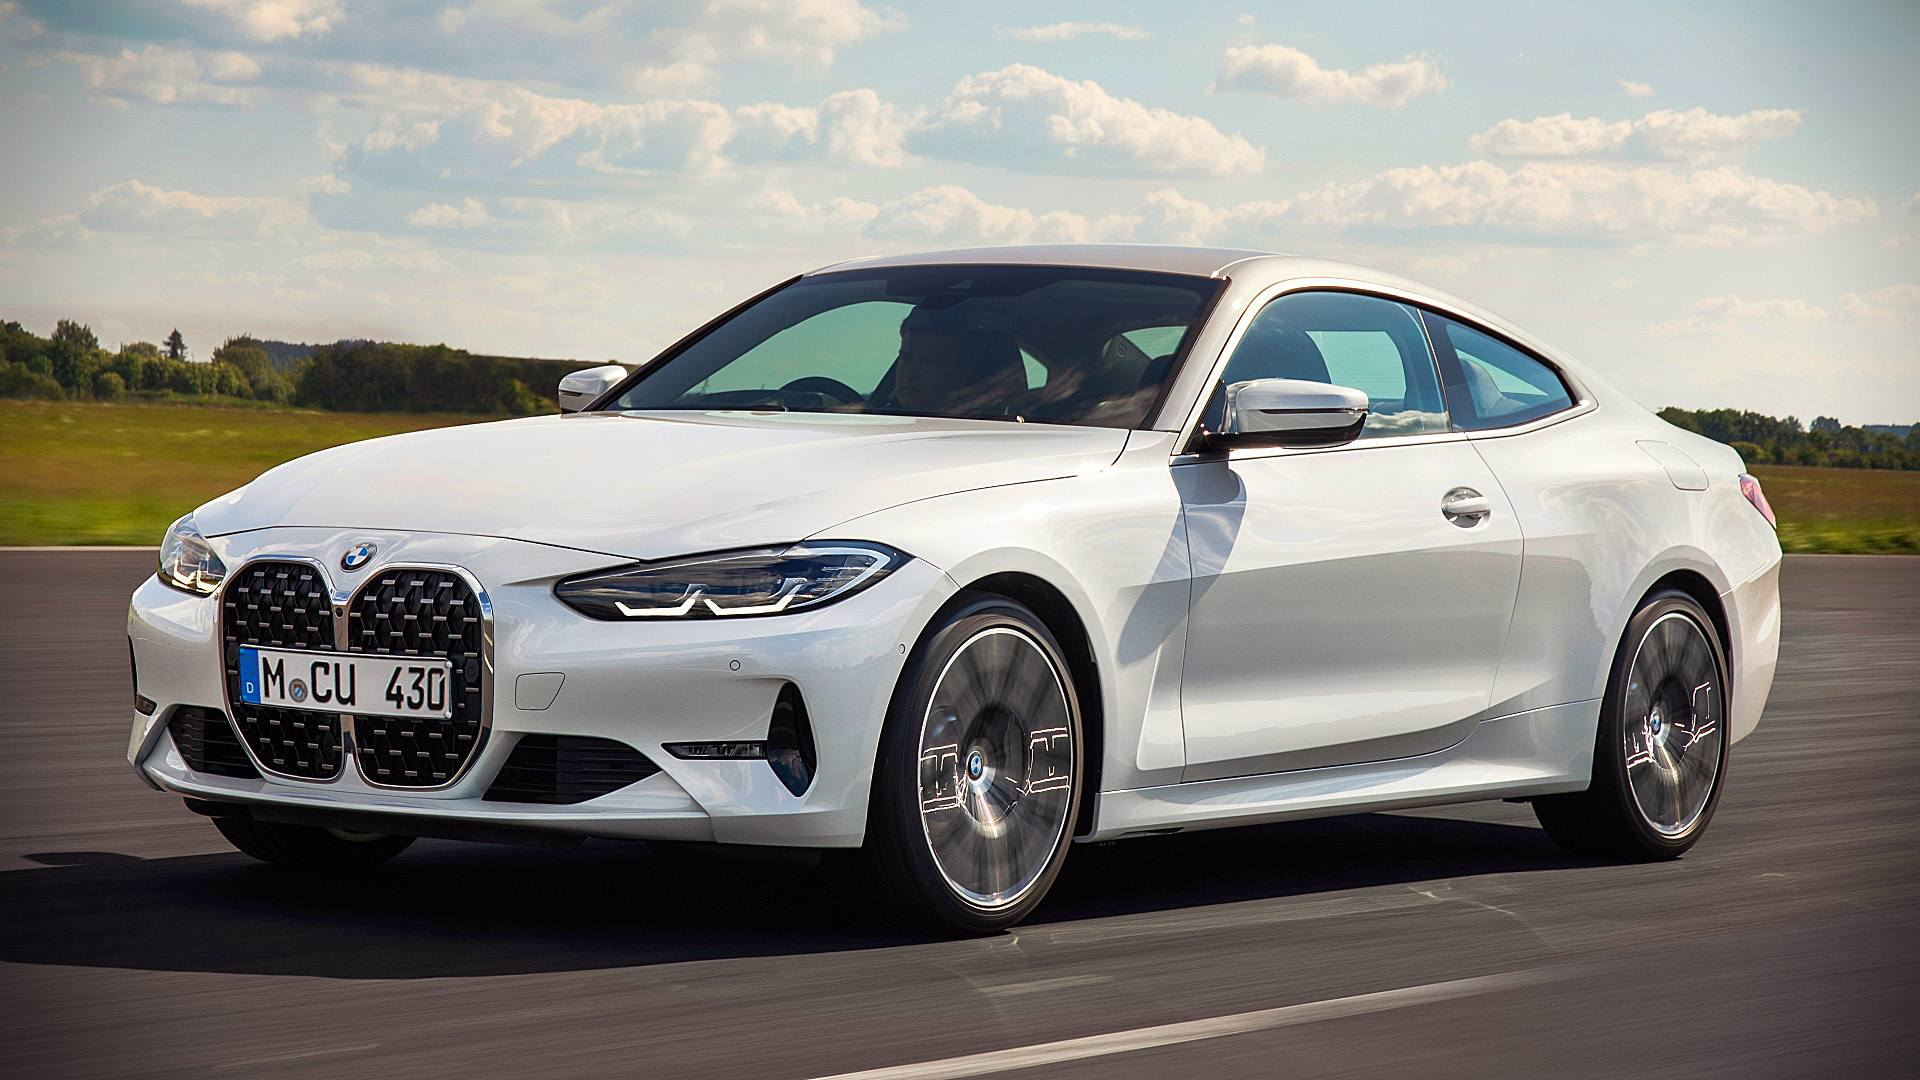 2021 BMW 430i Coupe Images Pictures